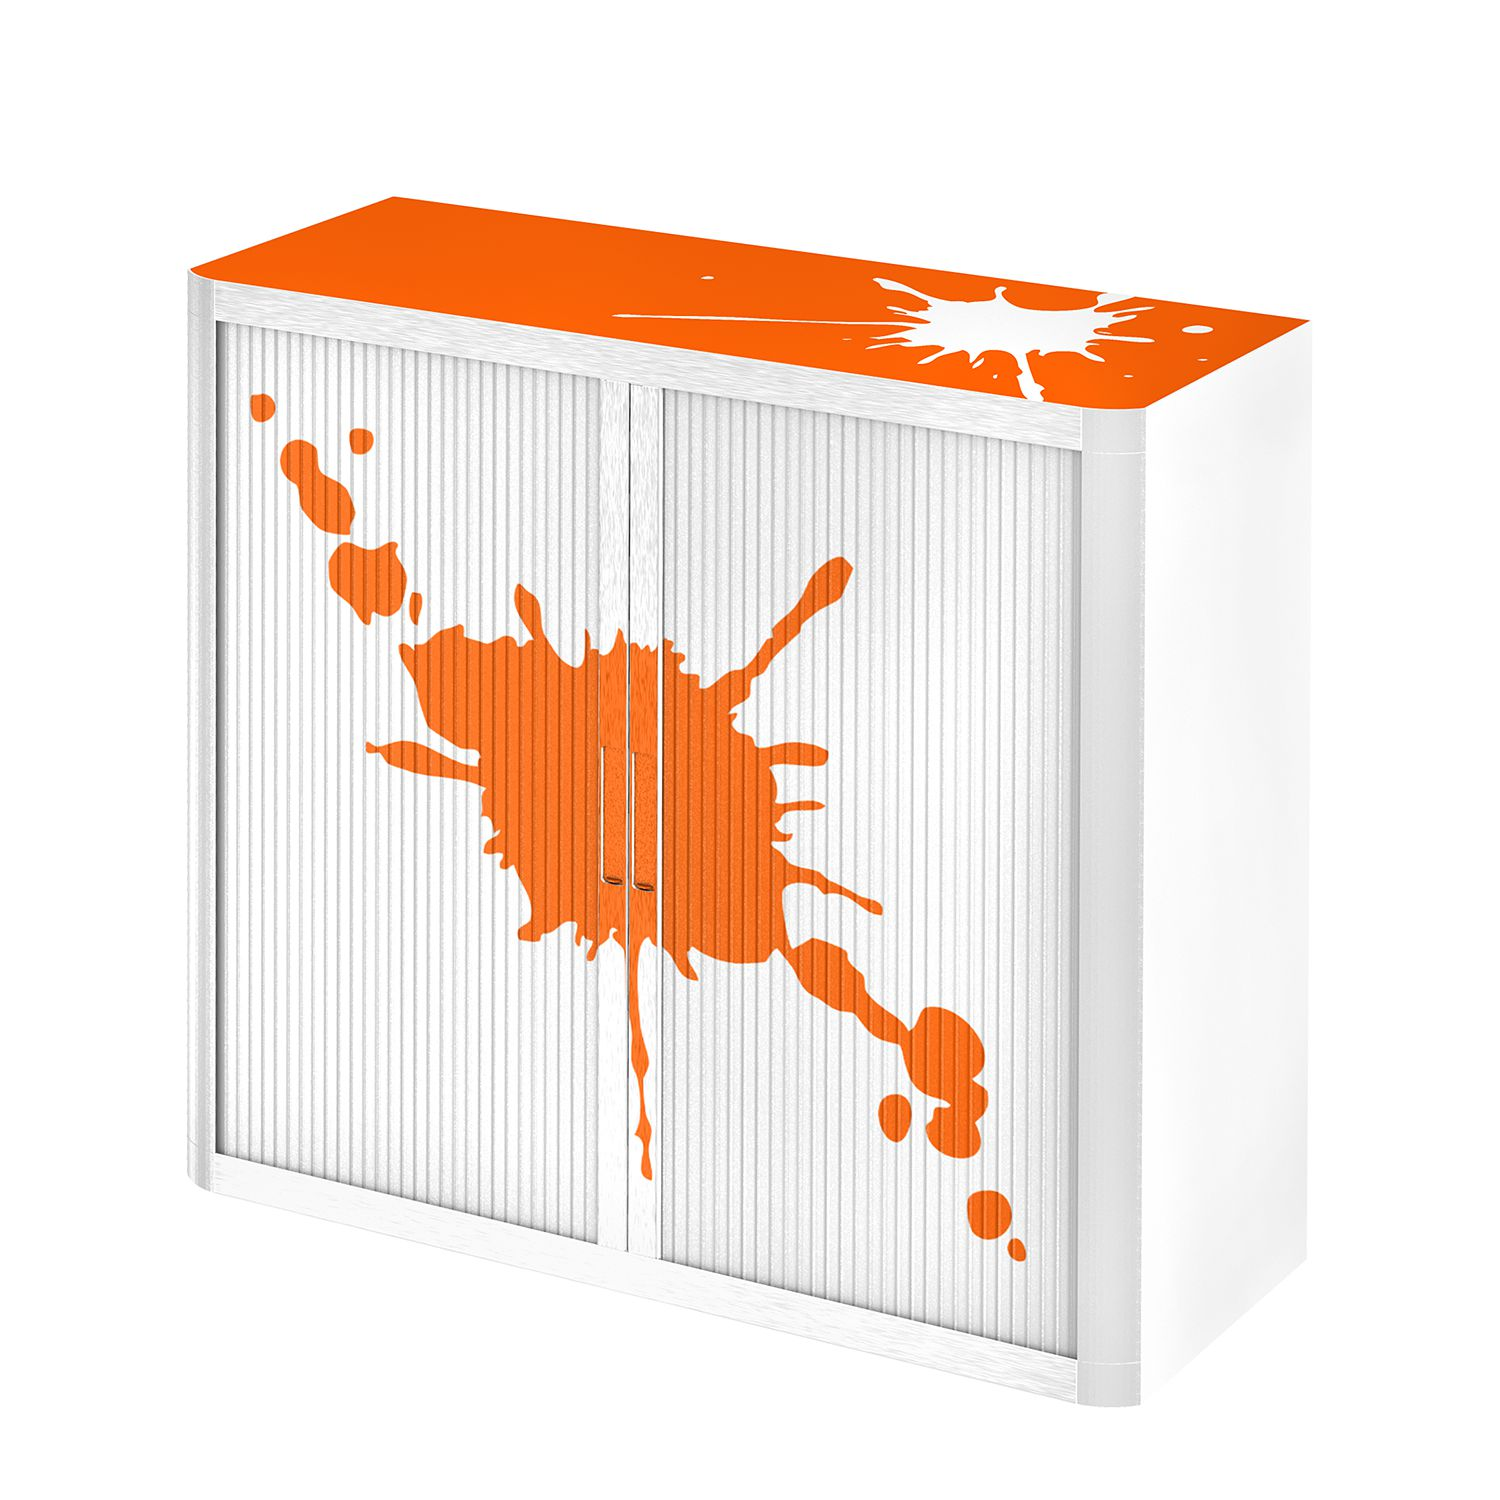 Aktenschrank easyOffice Stickers II - Orange - 104 cm, easy Office und Paperflow